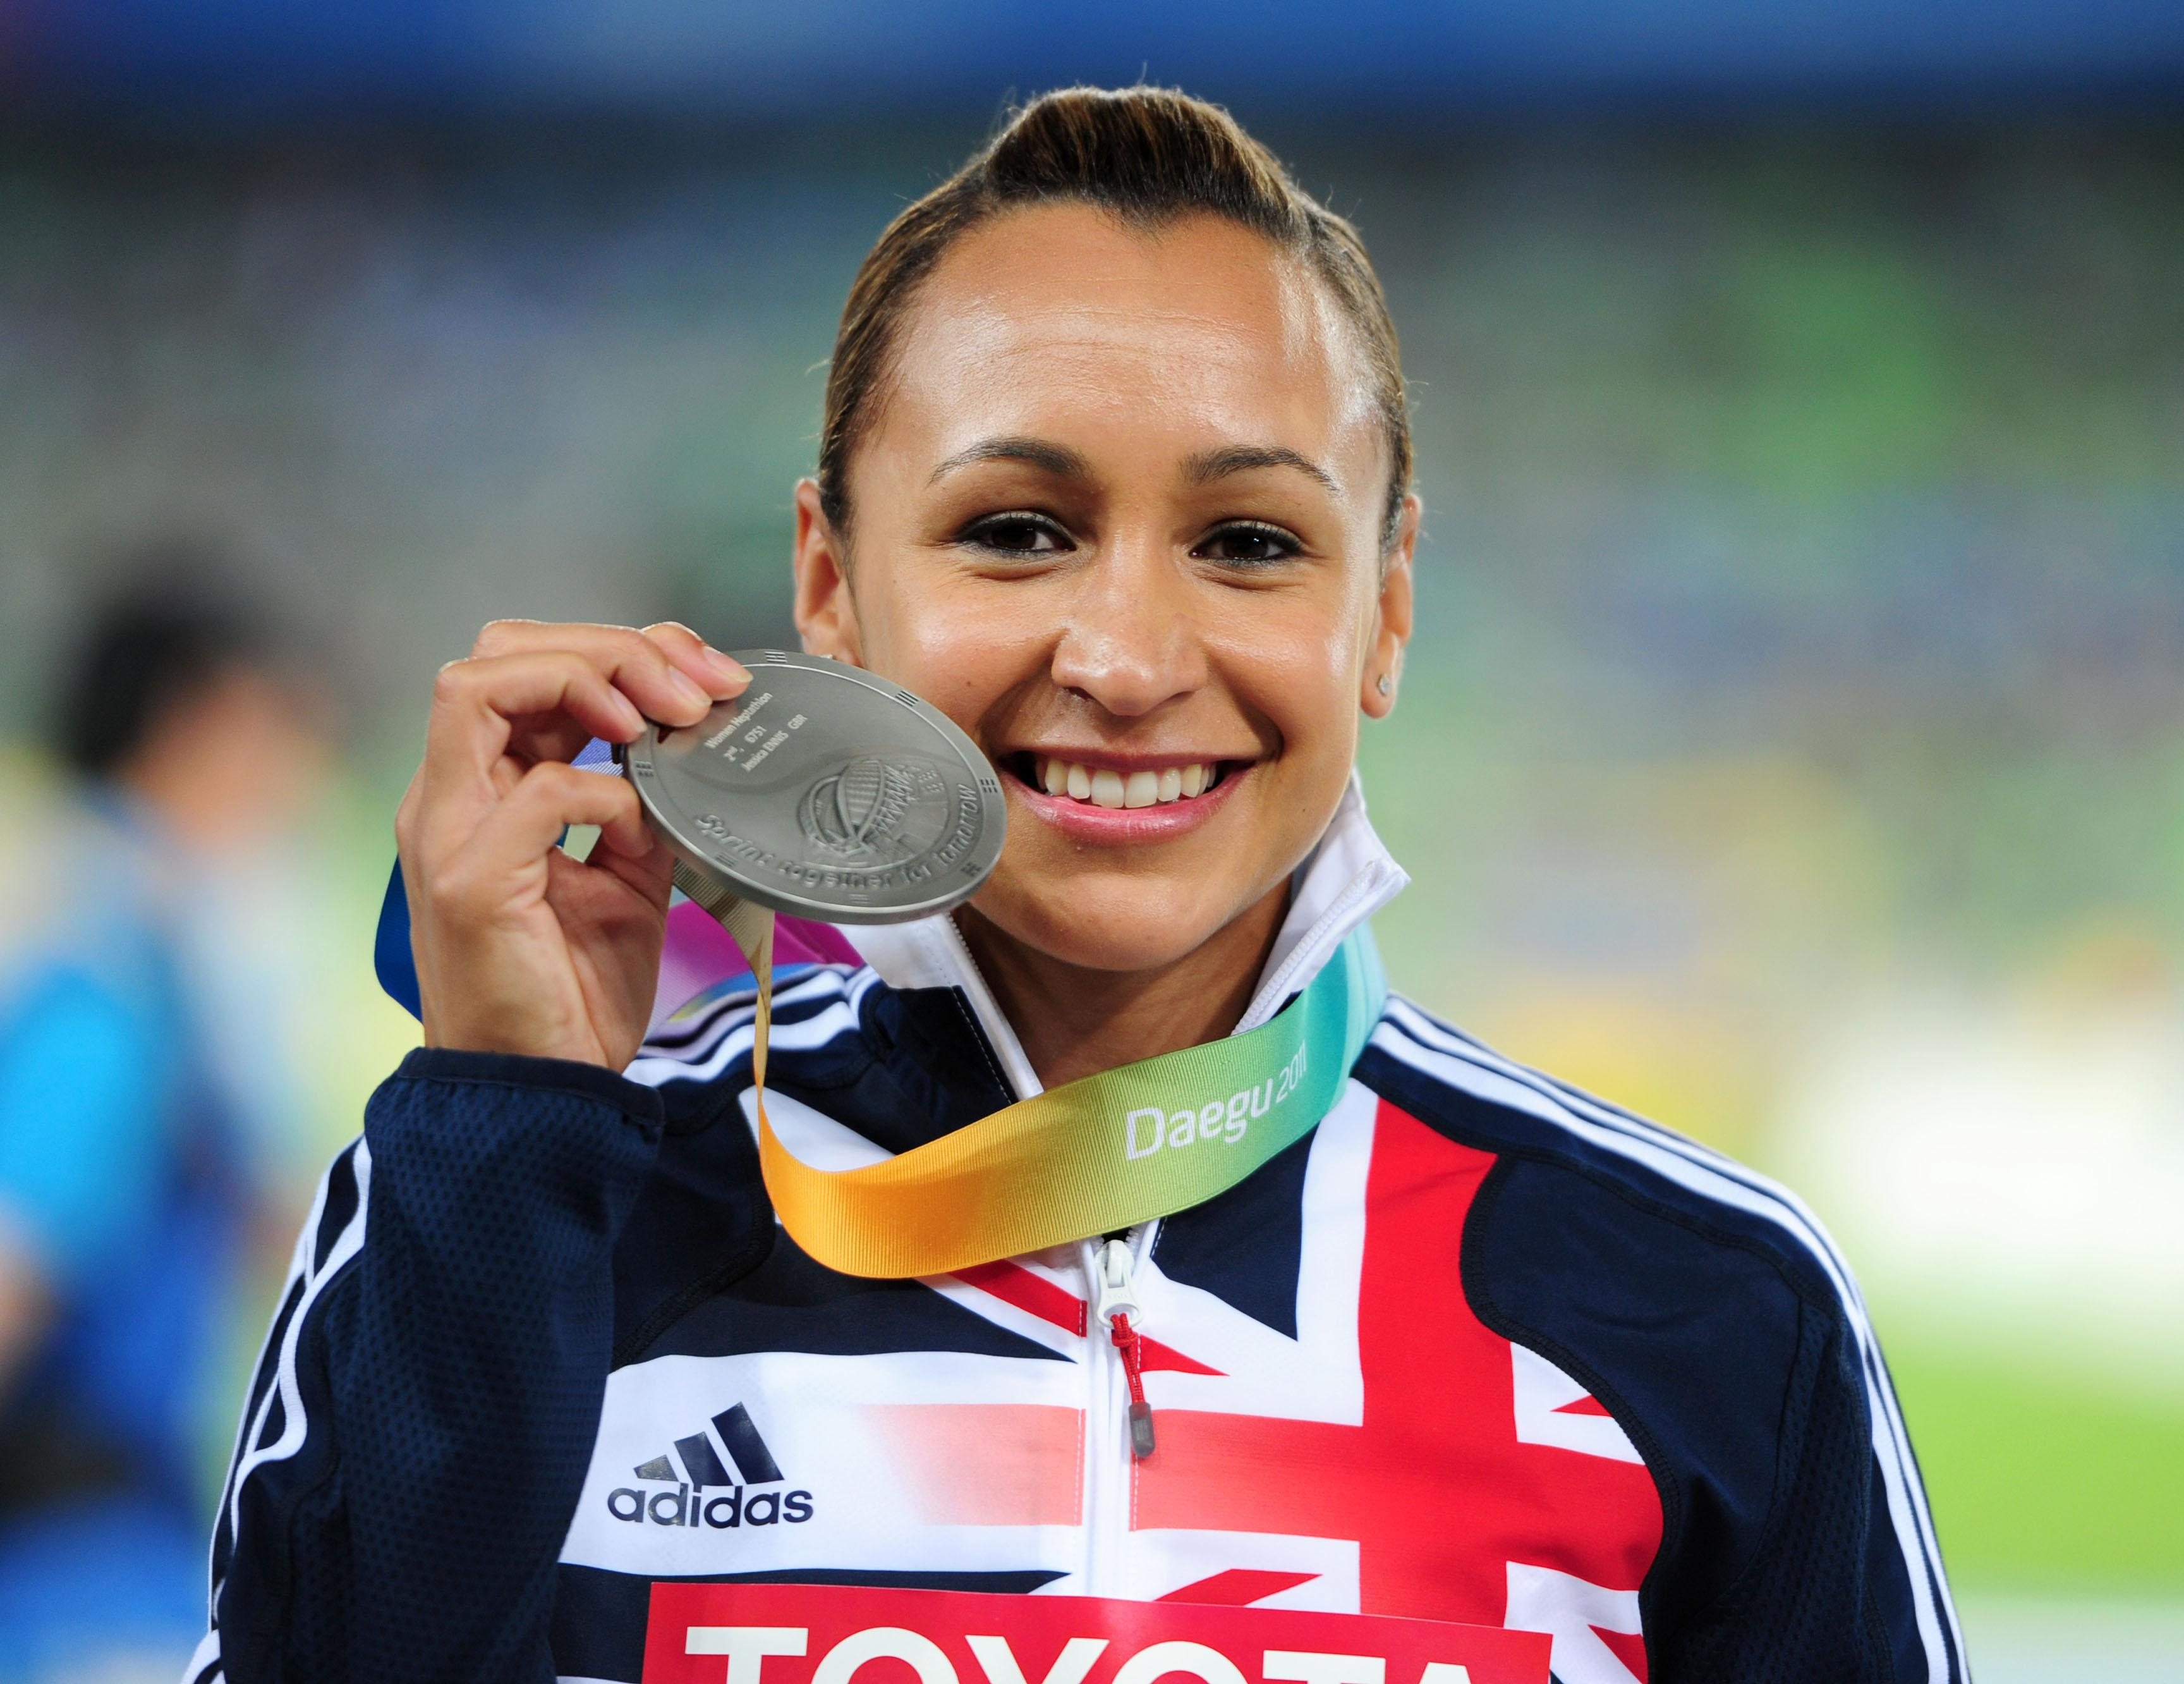 The Sheffield star holding aloft her silver medal she won in the heptathlon at the 2016 Olympic Games